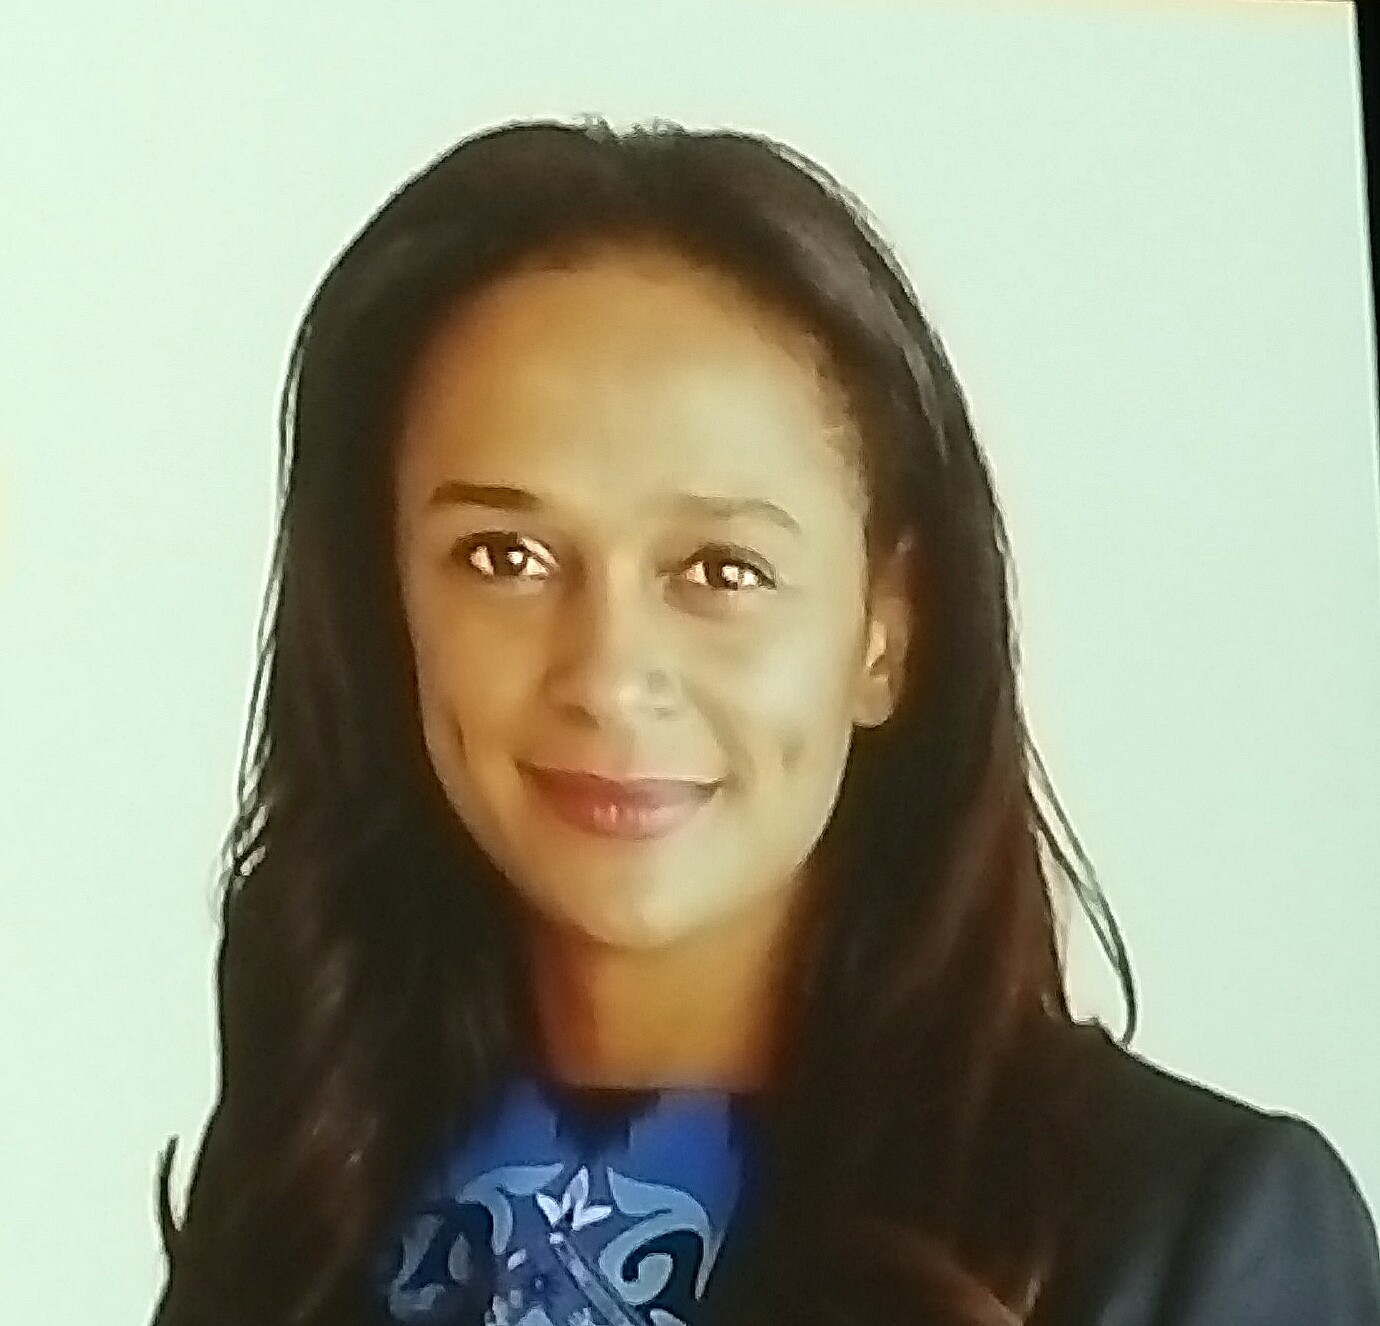 Isabel dos Santos outlined her plans for Sonangol at an event in London last night.